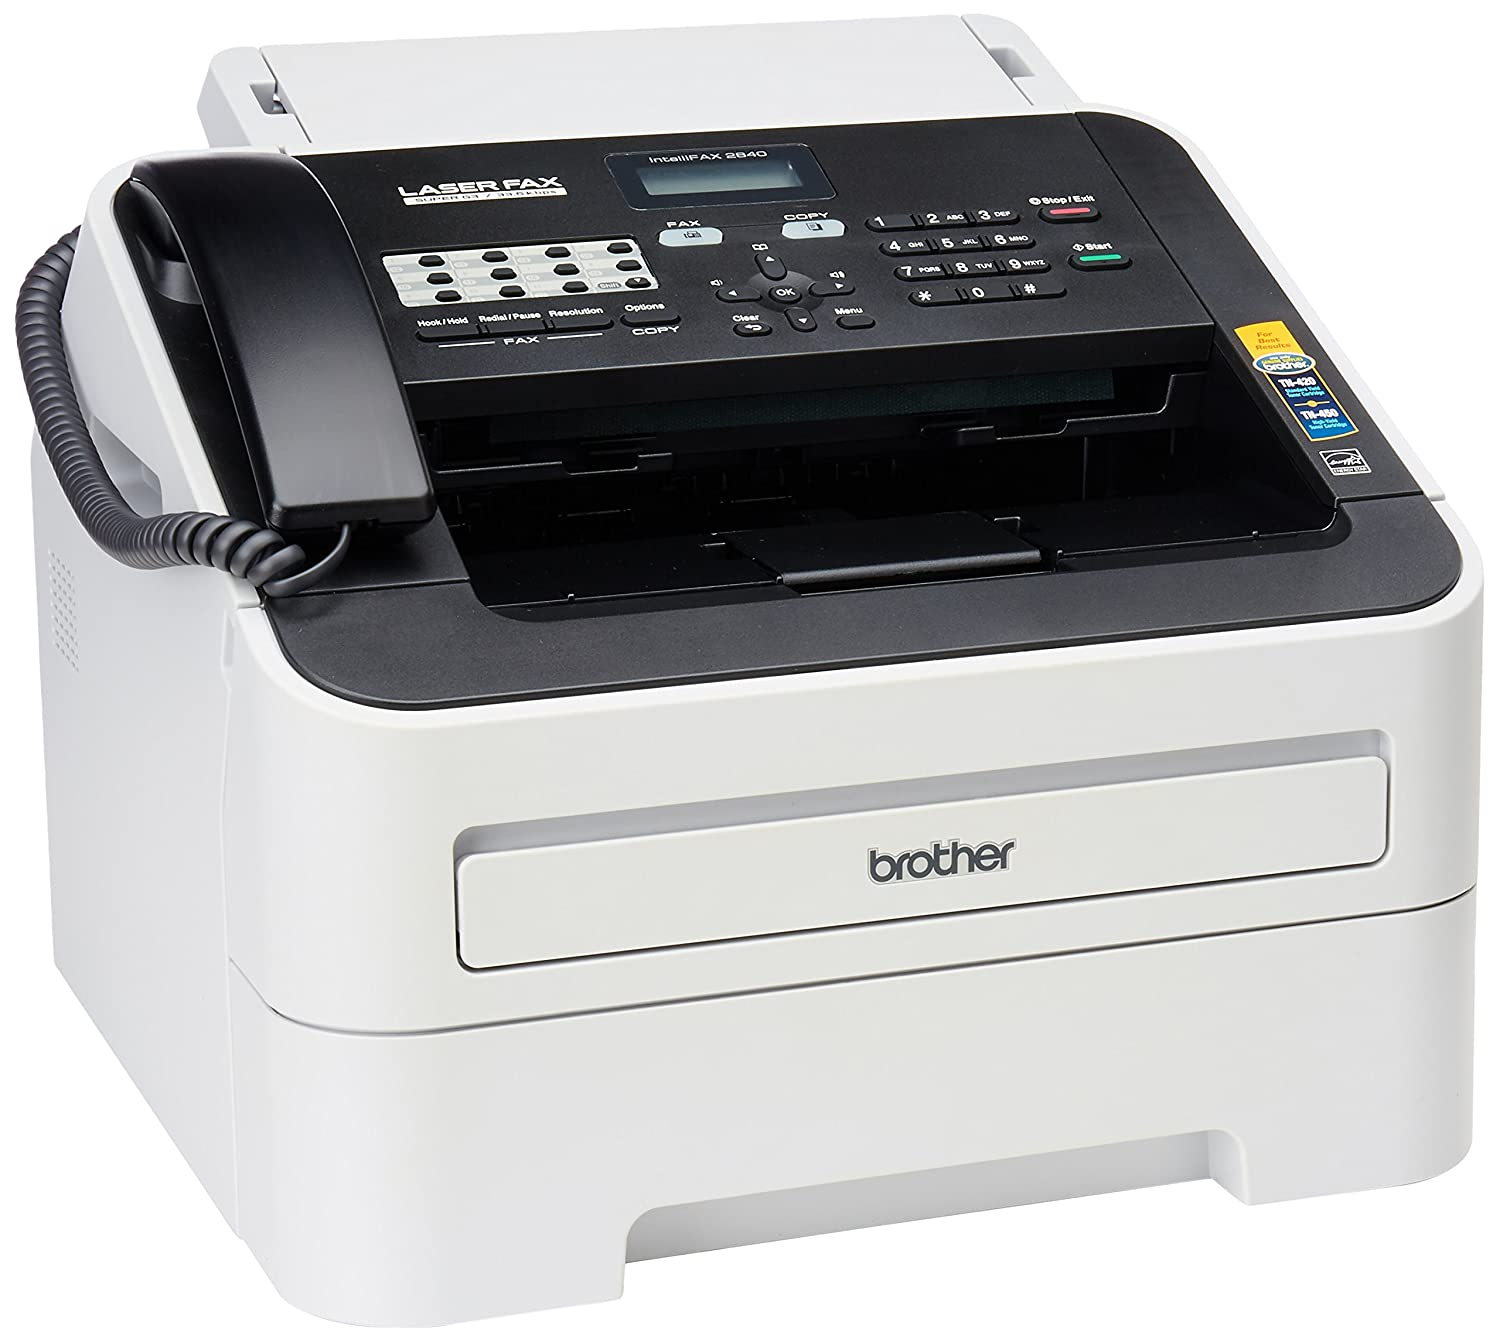 Brother FAX-2840 High Speed Mono Laser Fax Machine Brother Printer FAX2840